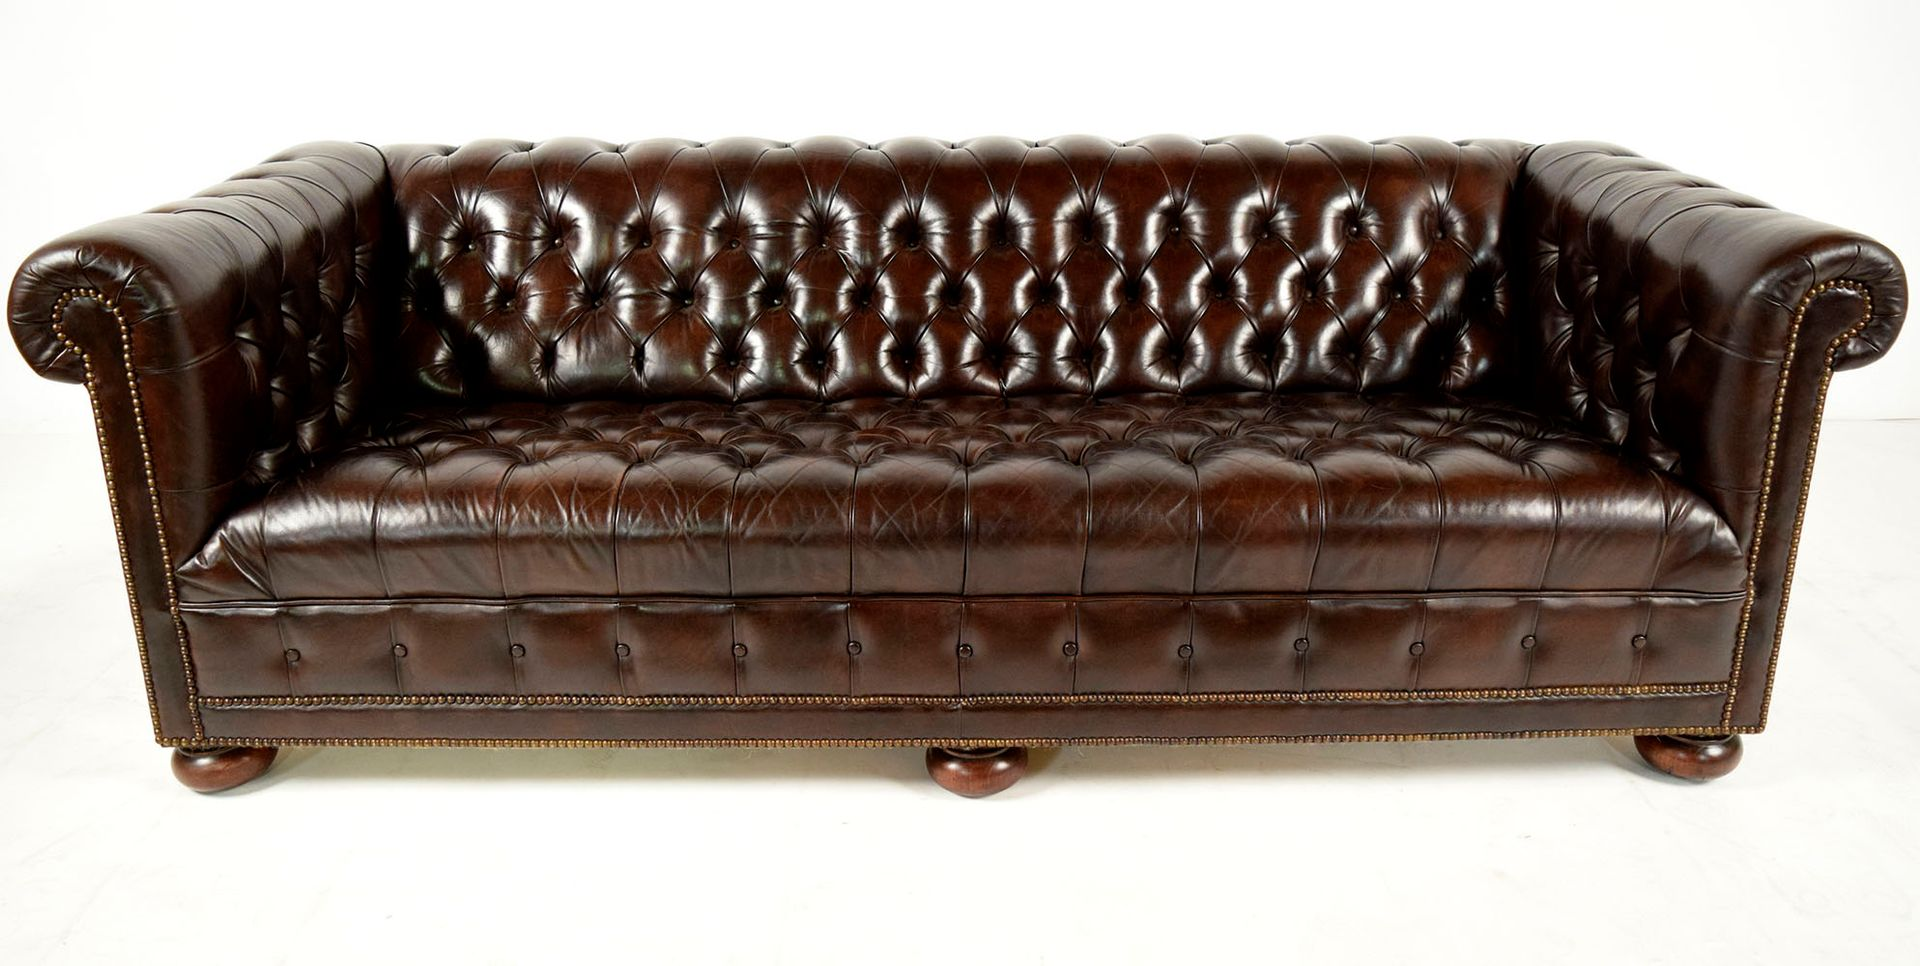 Vintage chesterfield brown leather sofa with round feet 1960s for sale at pamono Chesterfield brown leather sofa